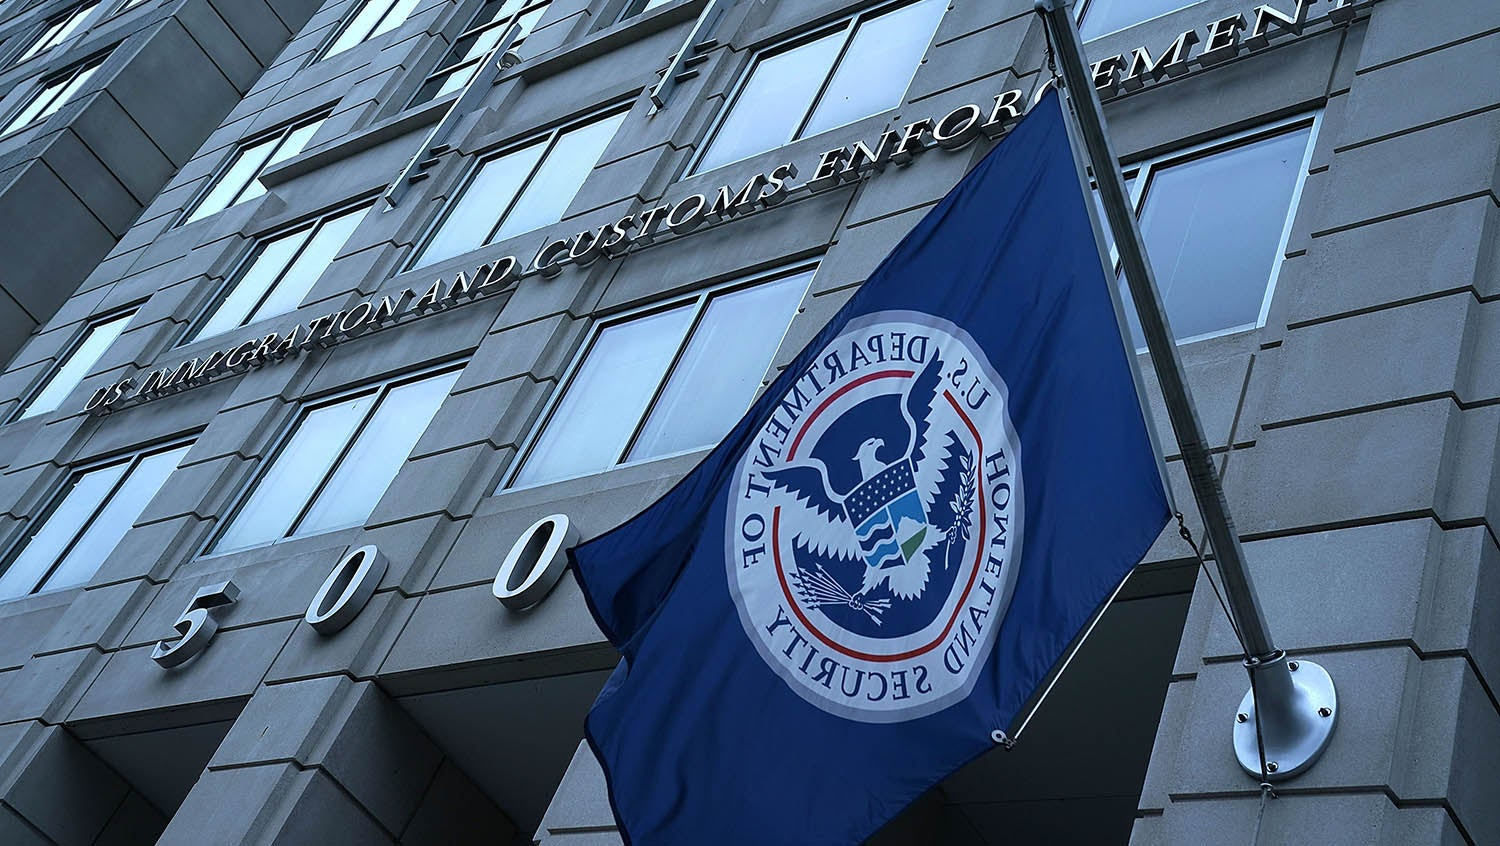 The Department of Homeland Security received a deluge of comments on the proposed public charge rule.